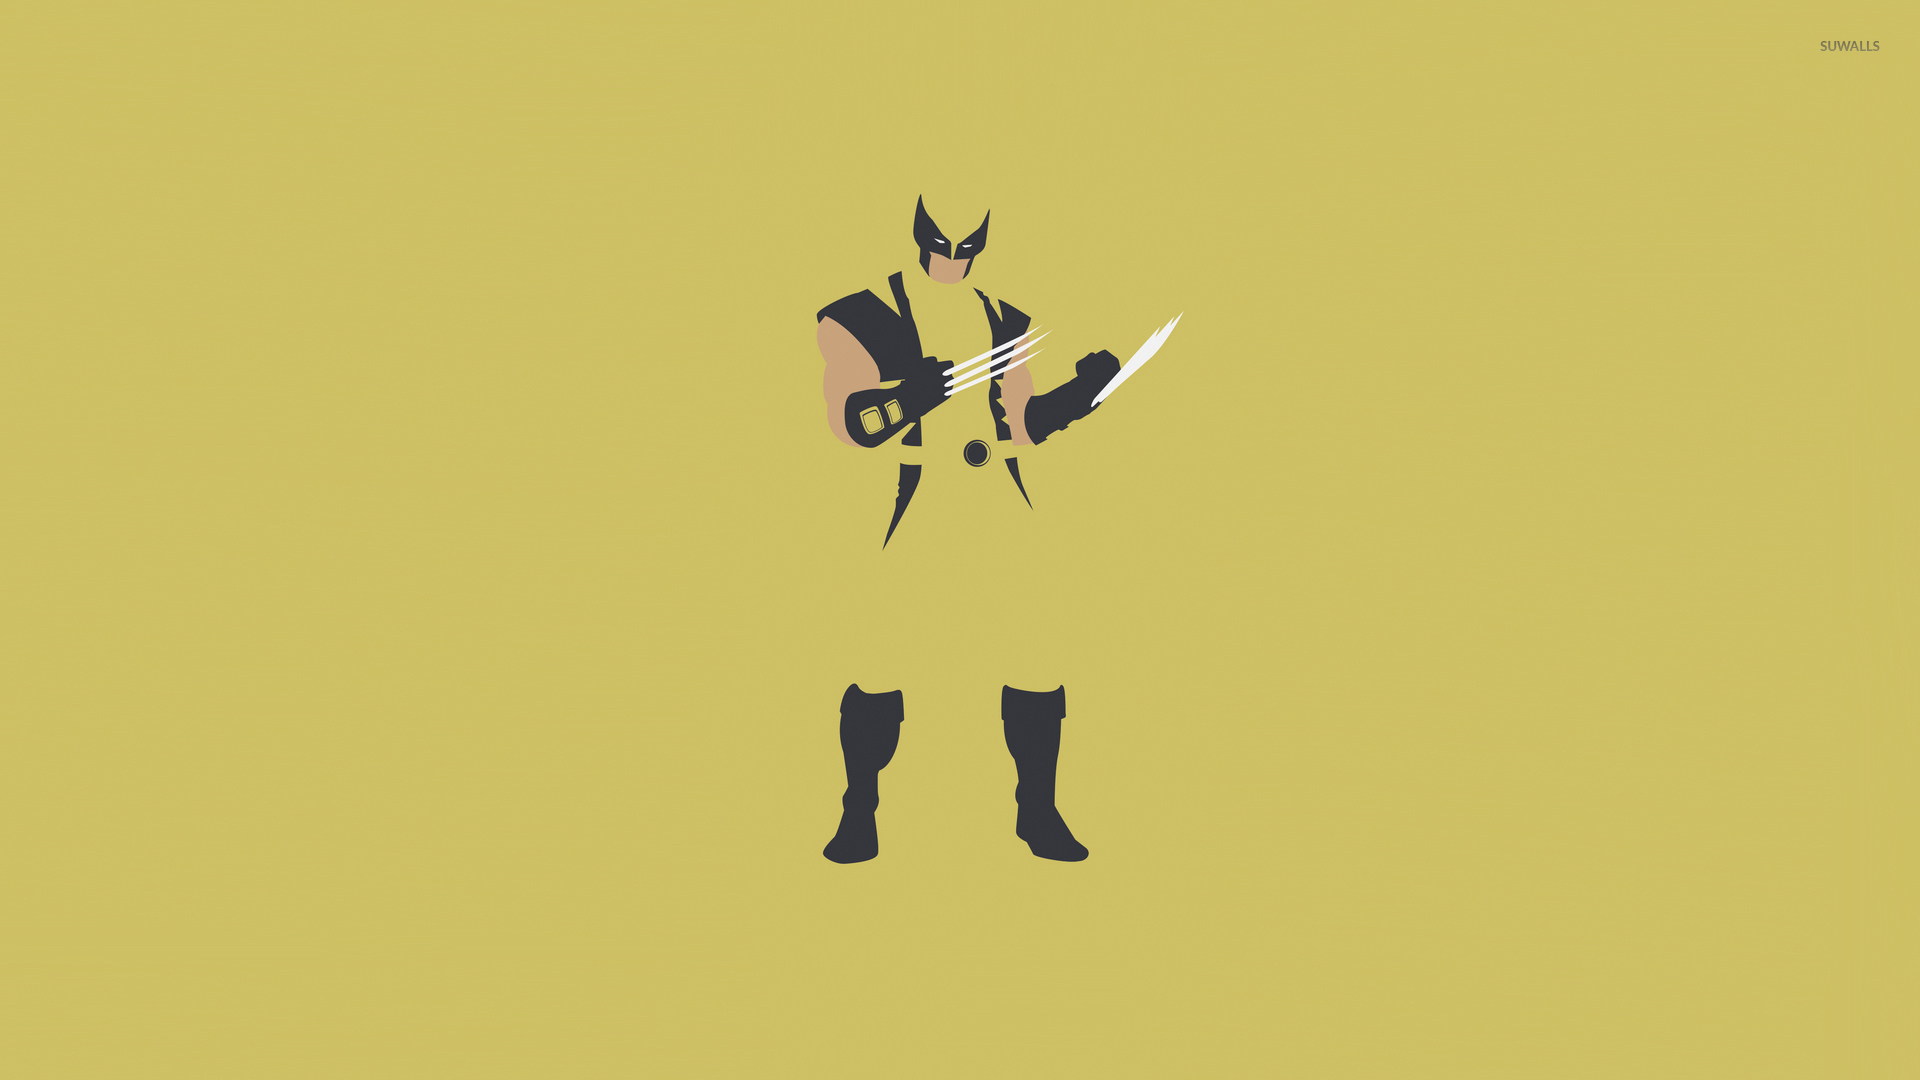 The Claws Of Wolverine 50438 1920×1080 Wallpaper